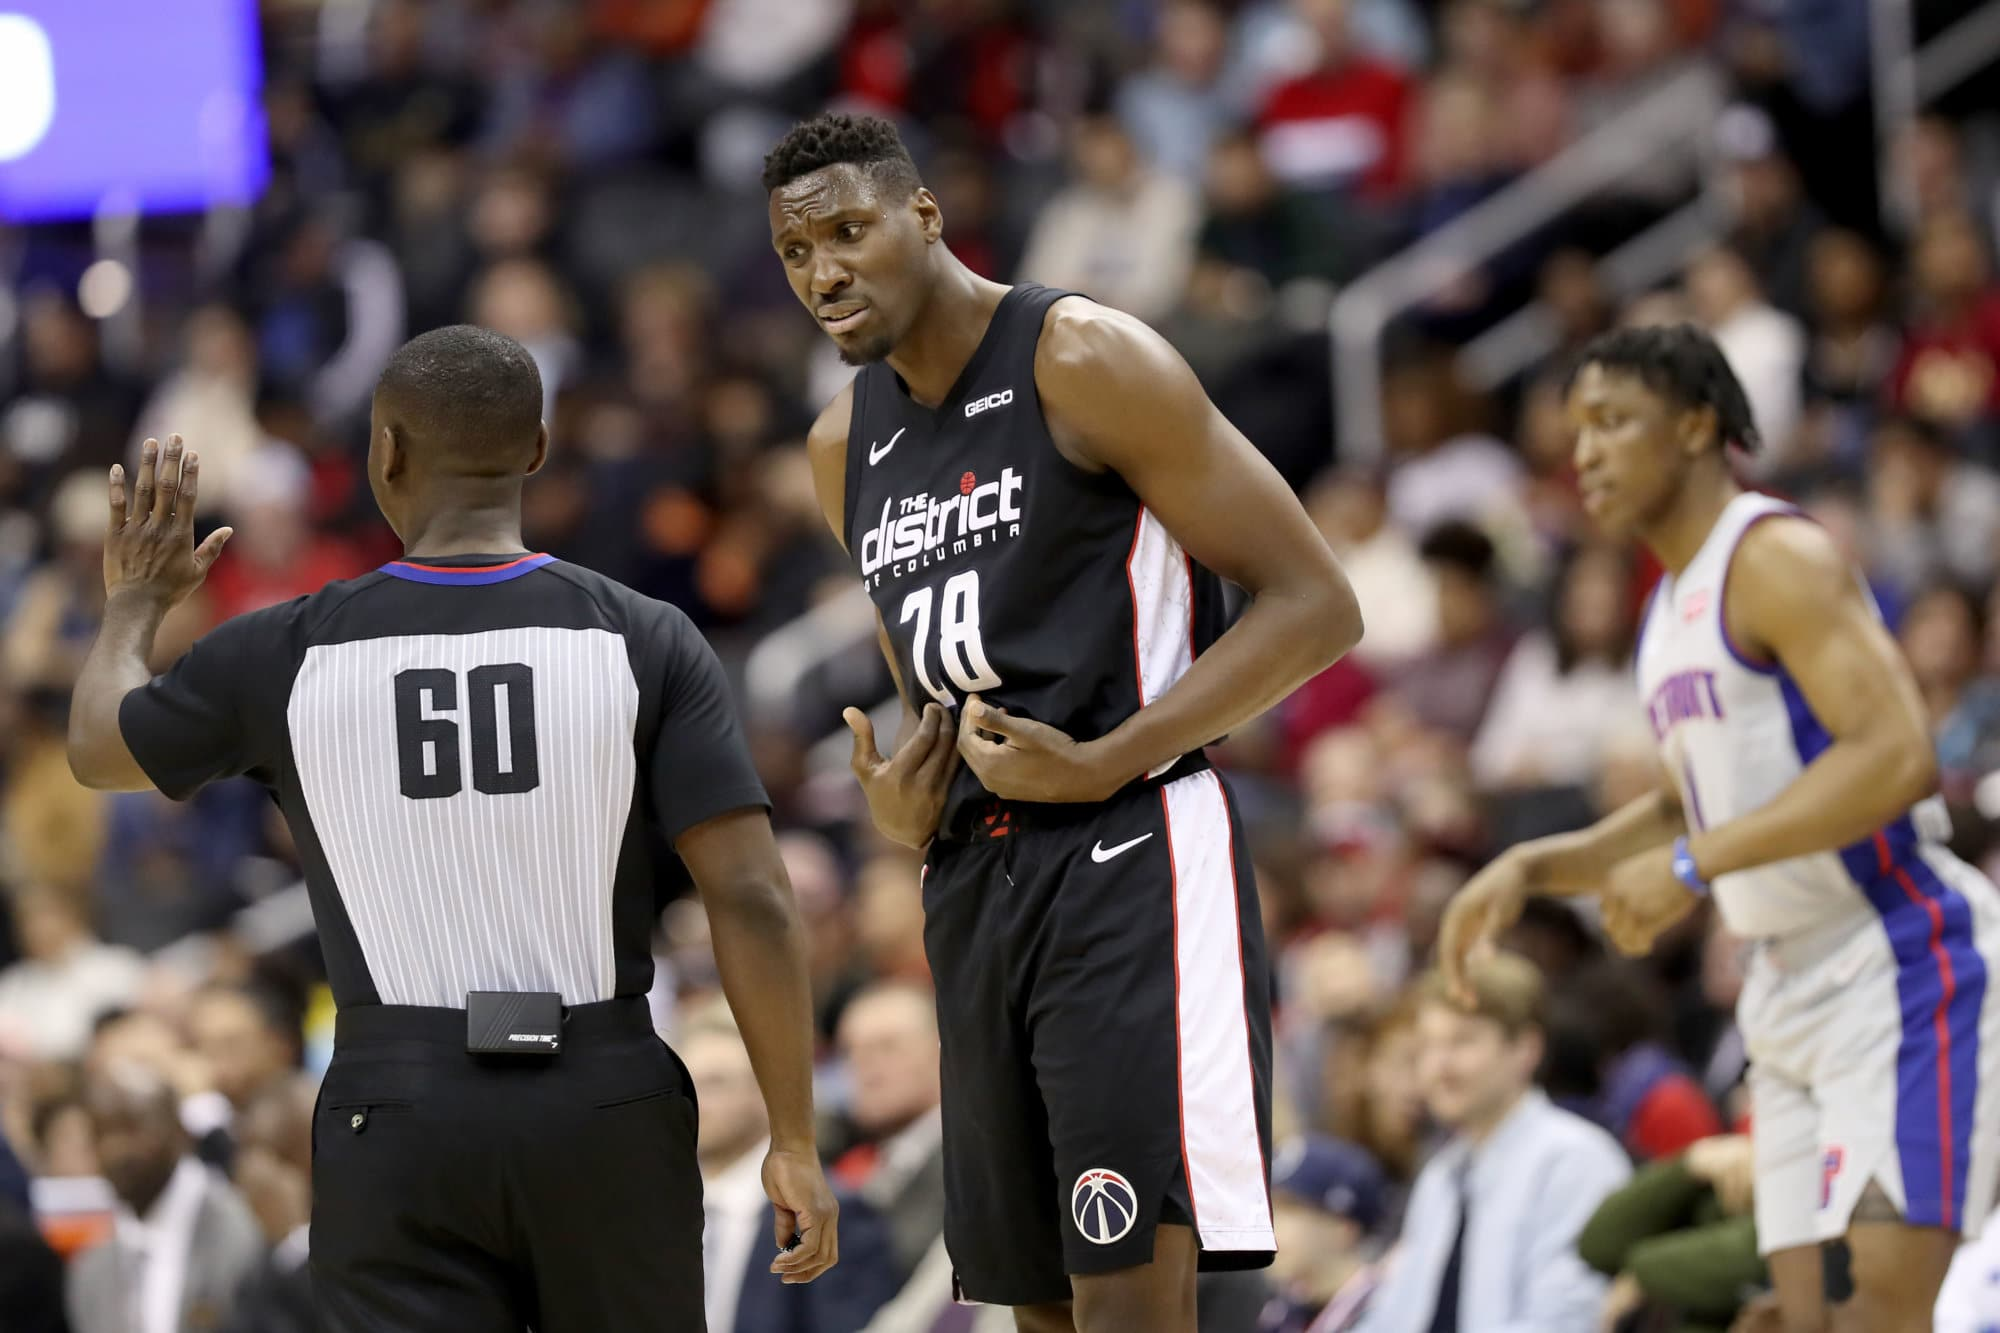 WASHINGTON, DC - JANUARY 21: Ian Mahinmi #28 of the Washington Wizards argues a foul call with referee James Williams #60 during the second half against the Detroit Pistons at Capital One Arena on January 21, 2019 in Washington, DC. NOTE TO USER: User expressly acknowledges and agrees that, by downloading and or using this photograph, User is consenting to the terms and conditions of the Getty Images License Agreement. (Photo by Rob Carr/Getty Images)